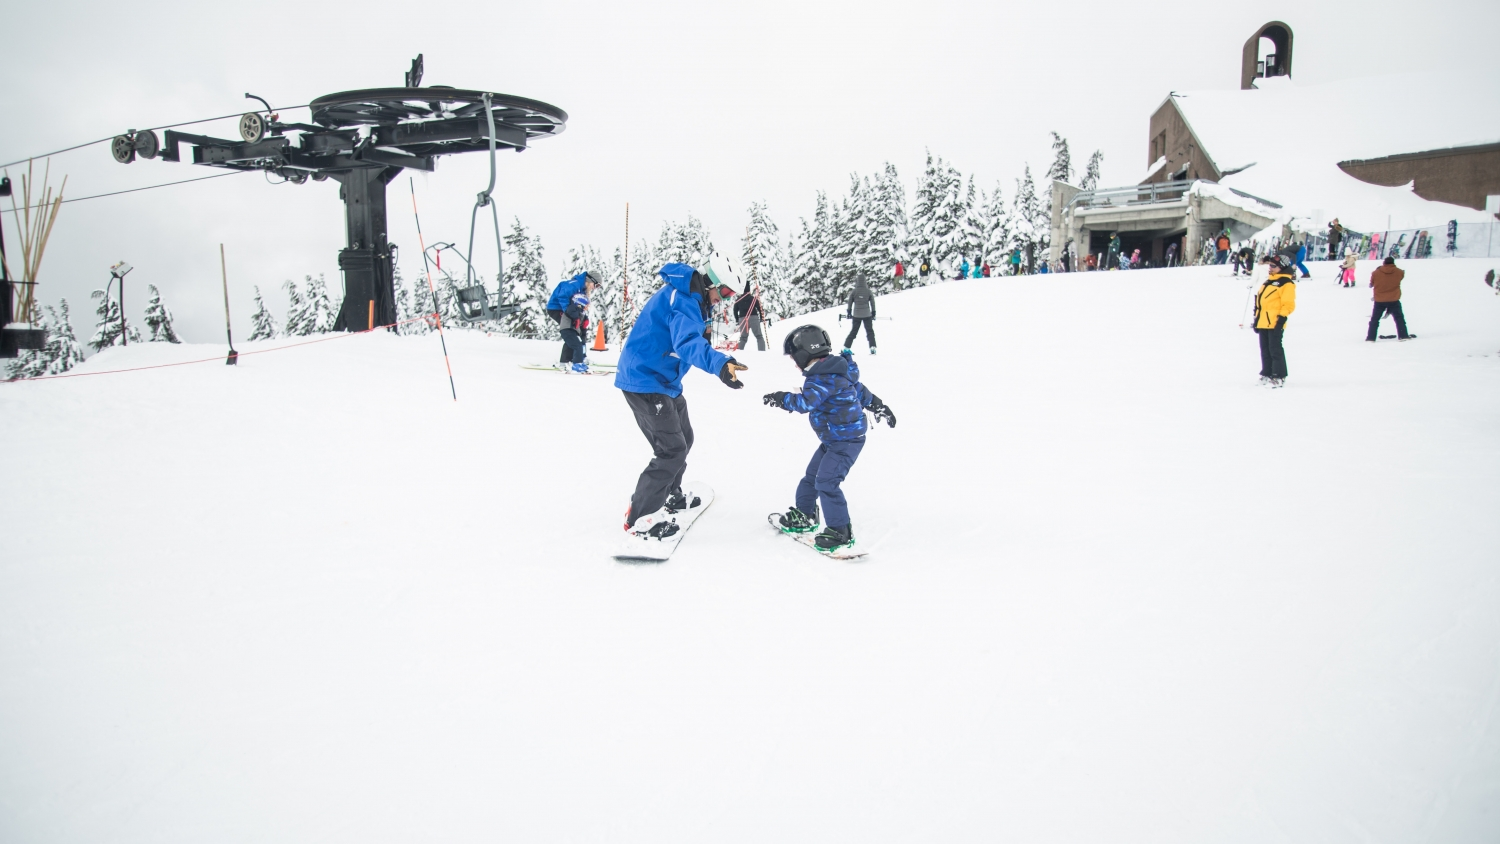 TAKE A SKI NANNY WITH YOU PROVIDED BY THE PARENT & CHILD NANNY AGENCY